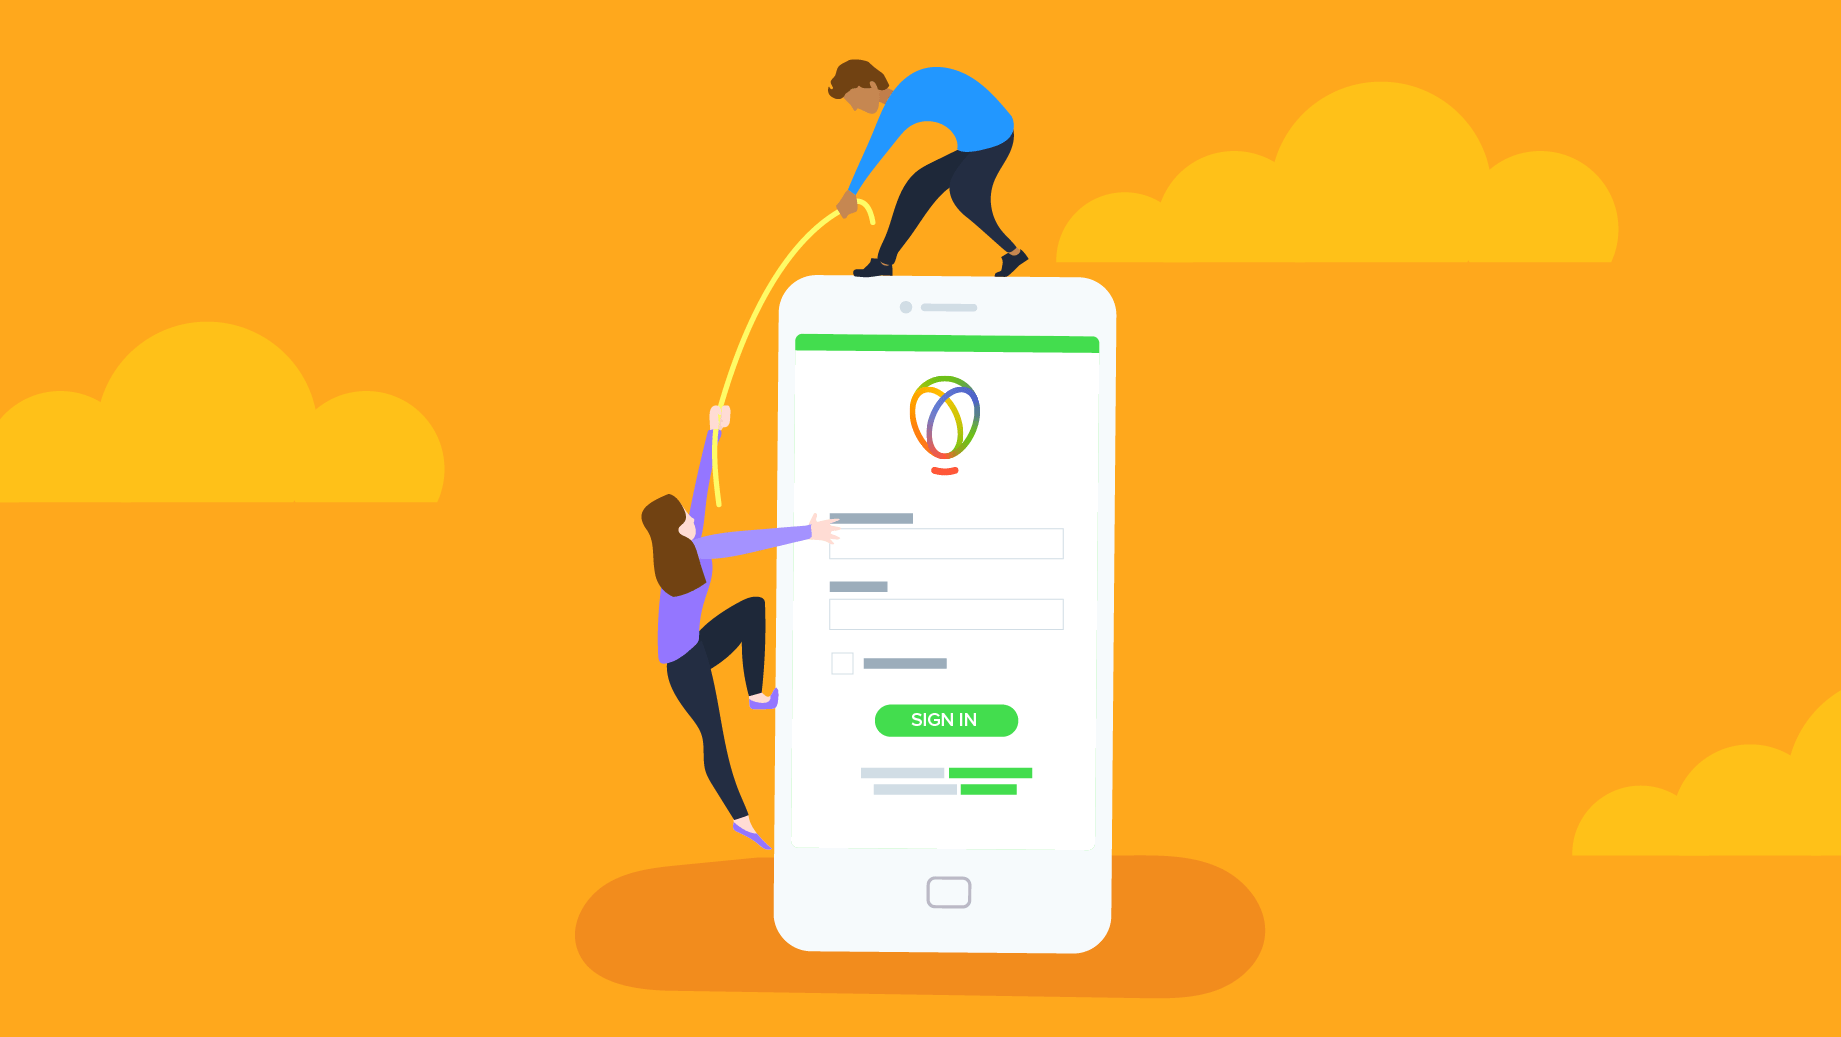 Avg My Account How To Log In To My Uphold Account! | Uphold Blog